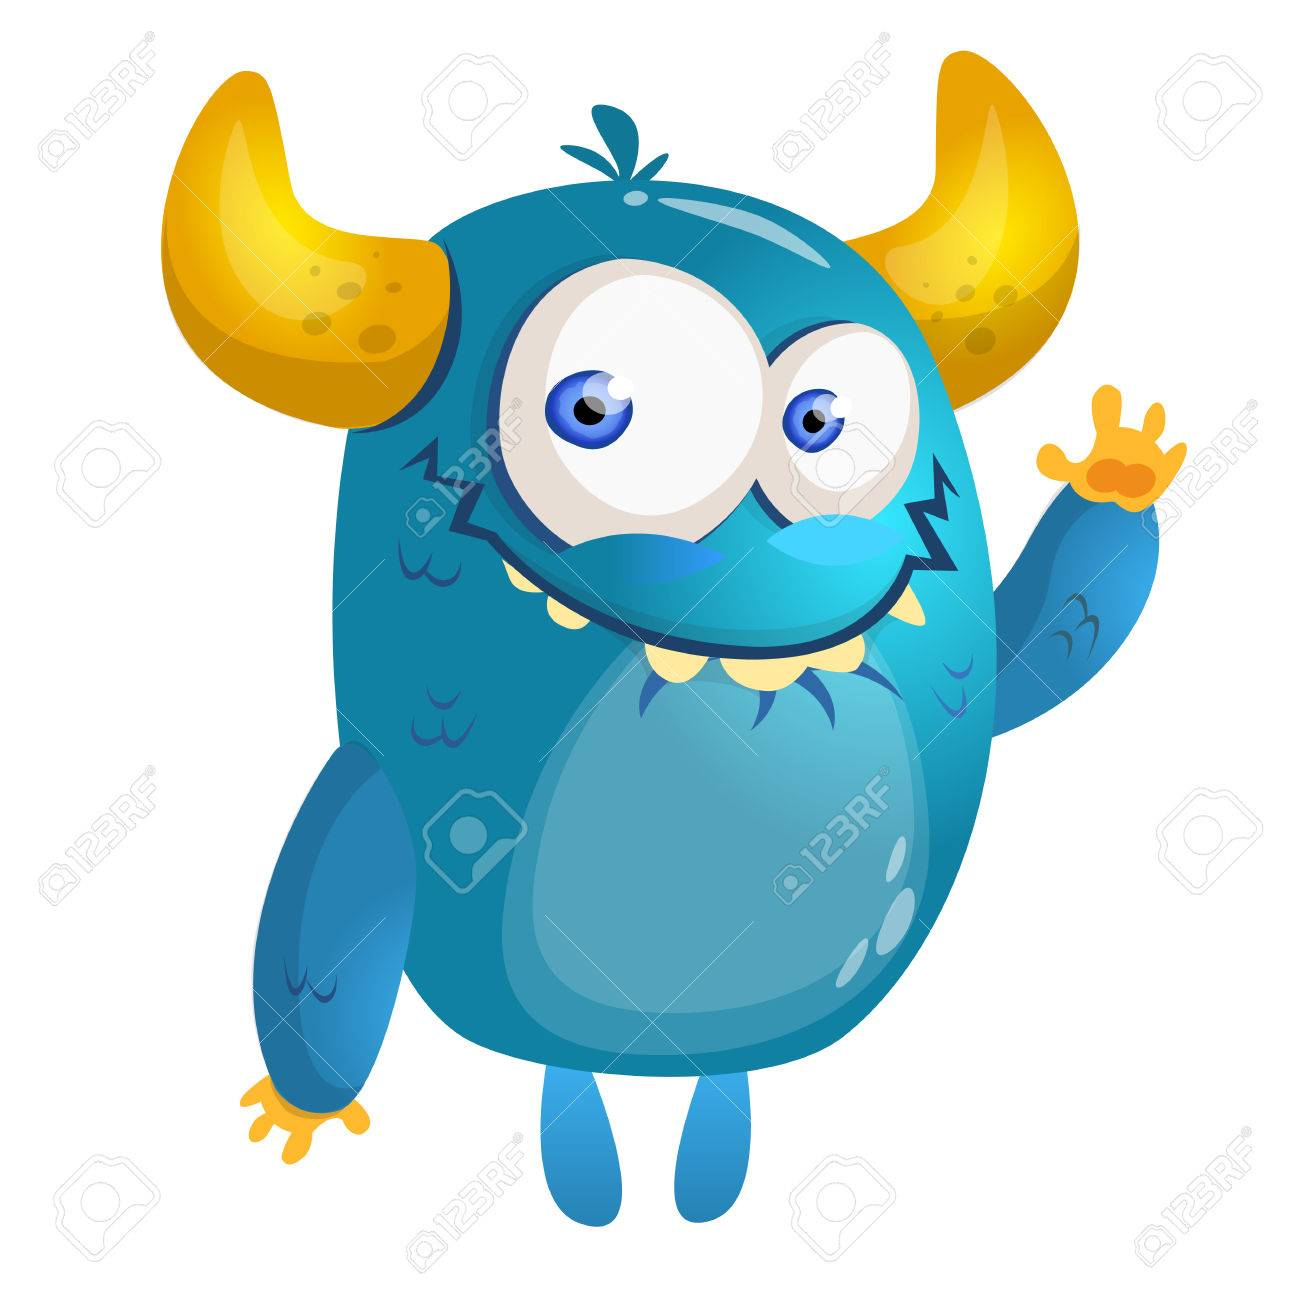 cartoon blue monster vector illustration royalty free cliparts rh 123rf com monster victory motorcycles monster victory trophy